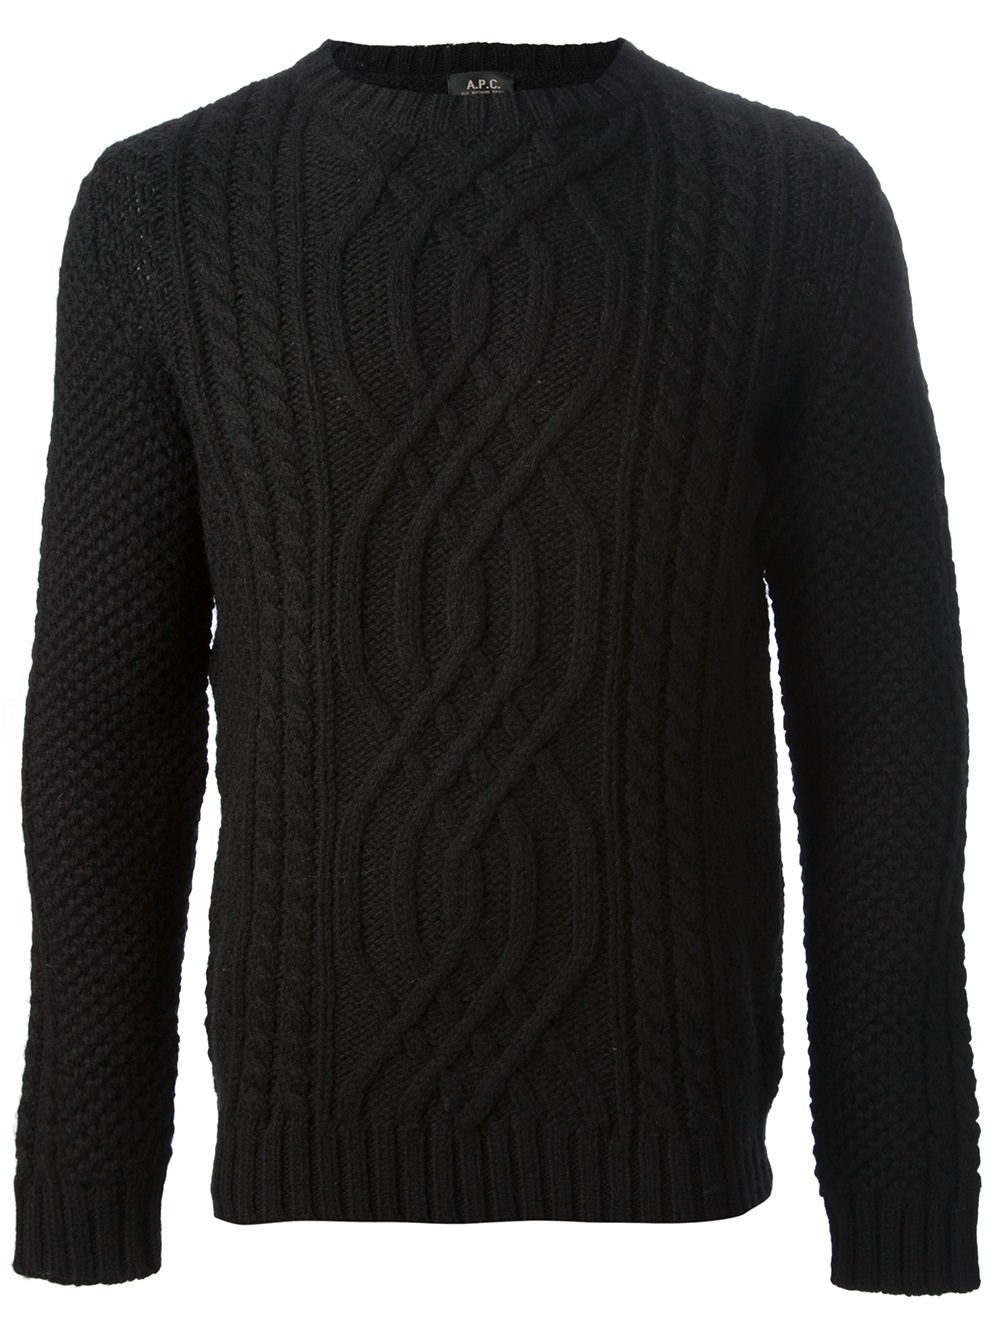 A.p.c. Cable Knit Sweater in Black for Men | Lyst